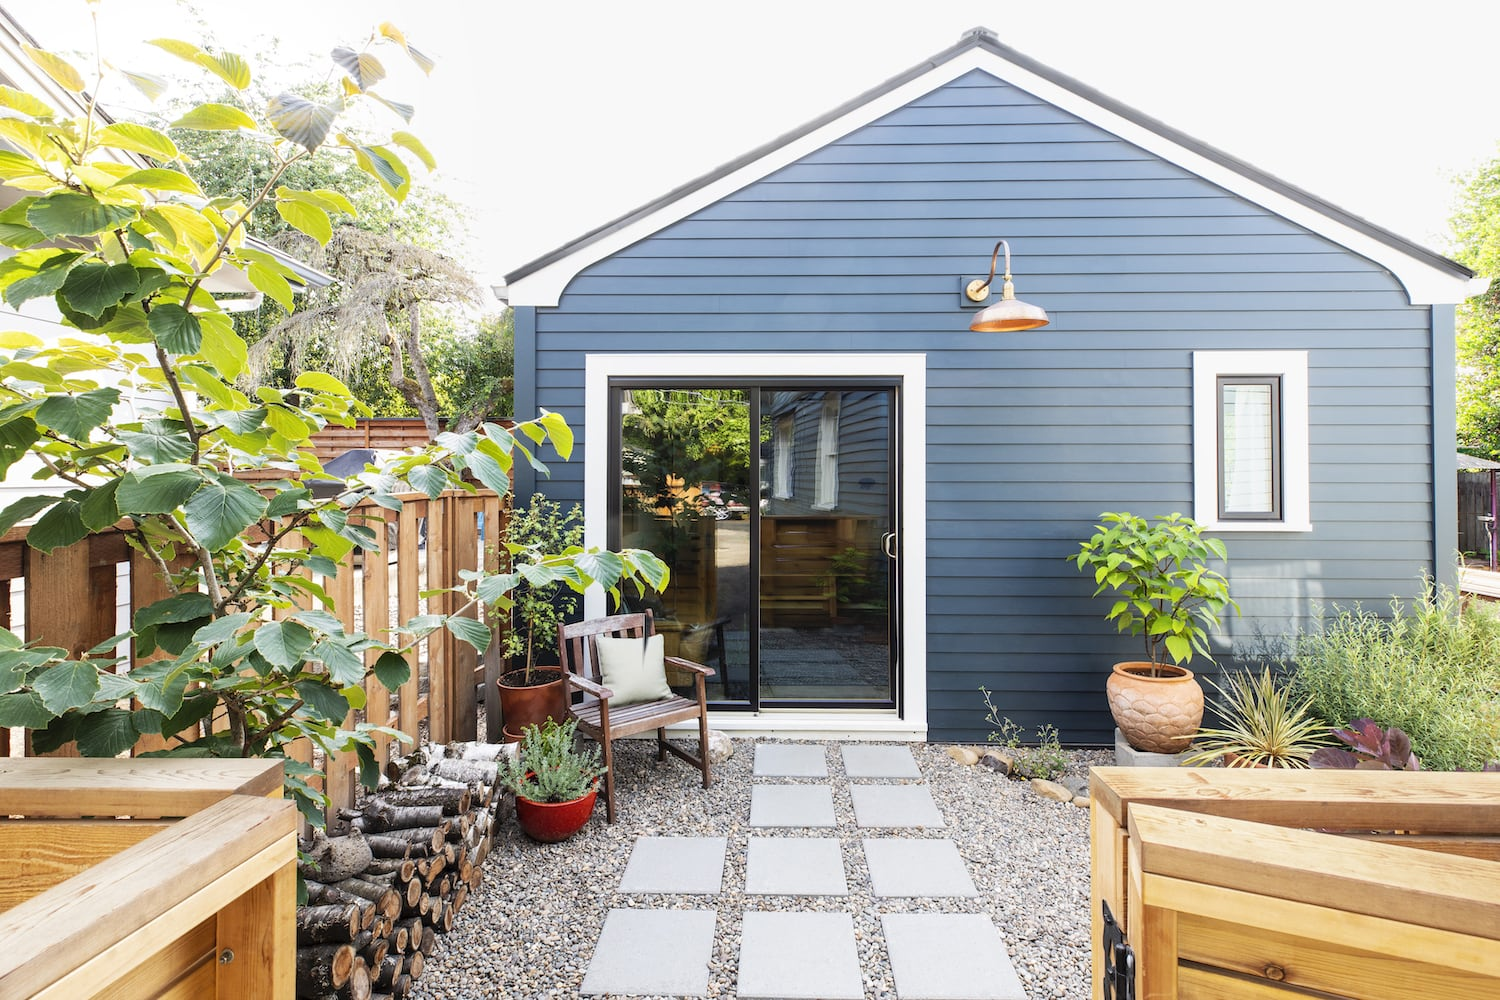 Exterior of garage conversion to guest house/ADU remodel in Portland, Oregon